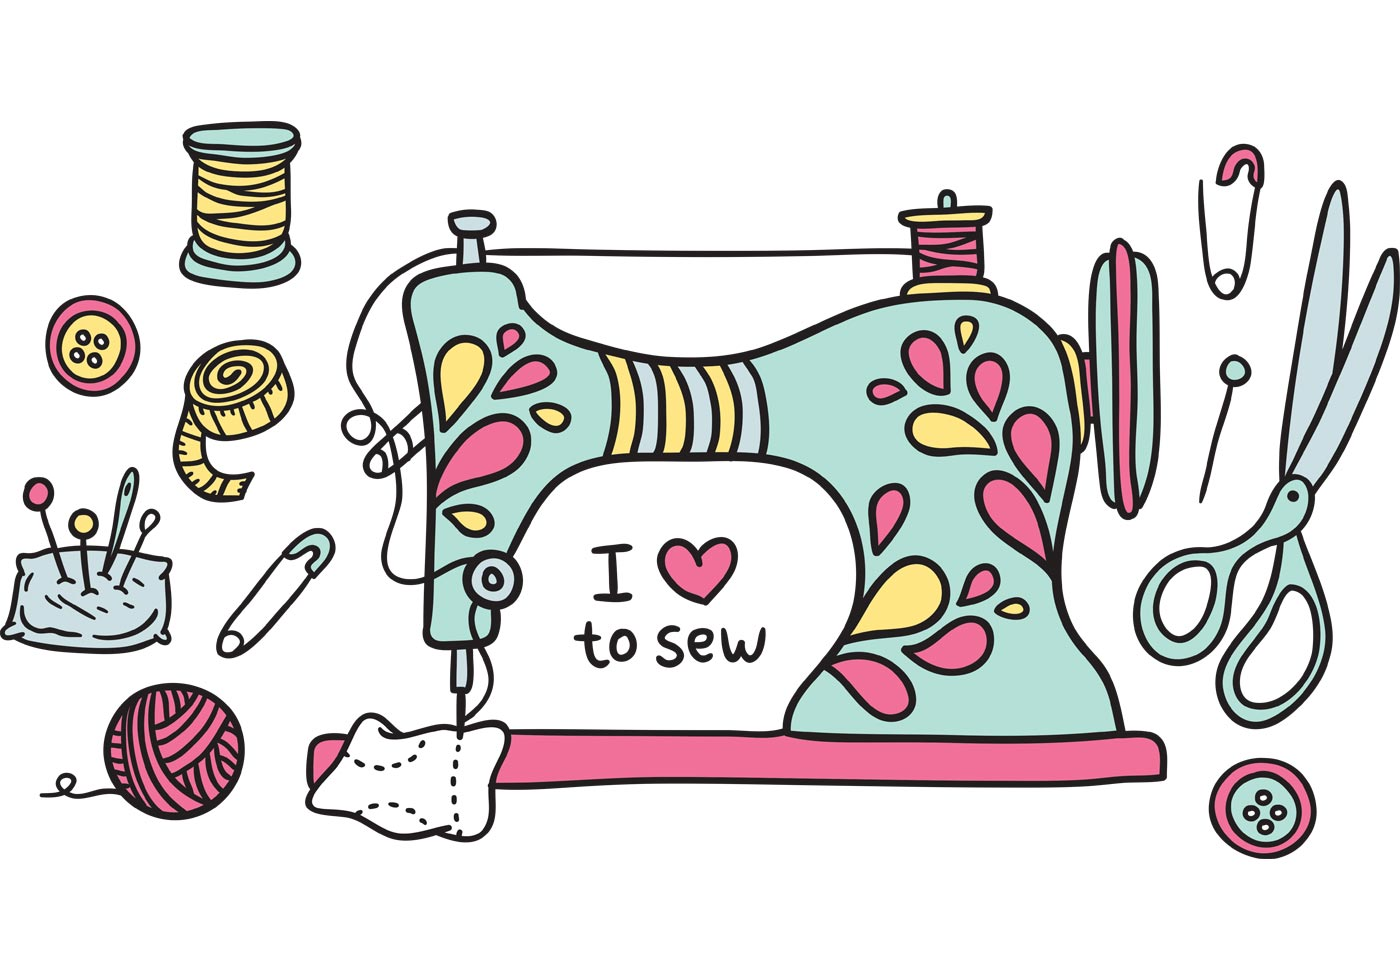 Free vintage sewing machine vector - Download Free Vector Art, Stock ...